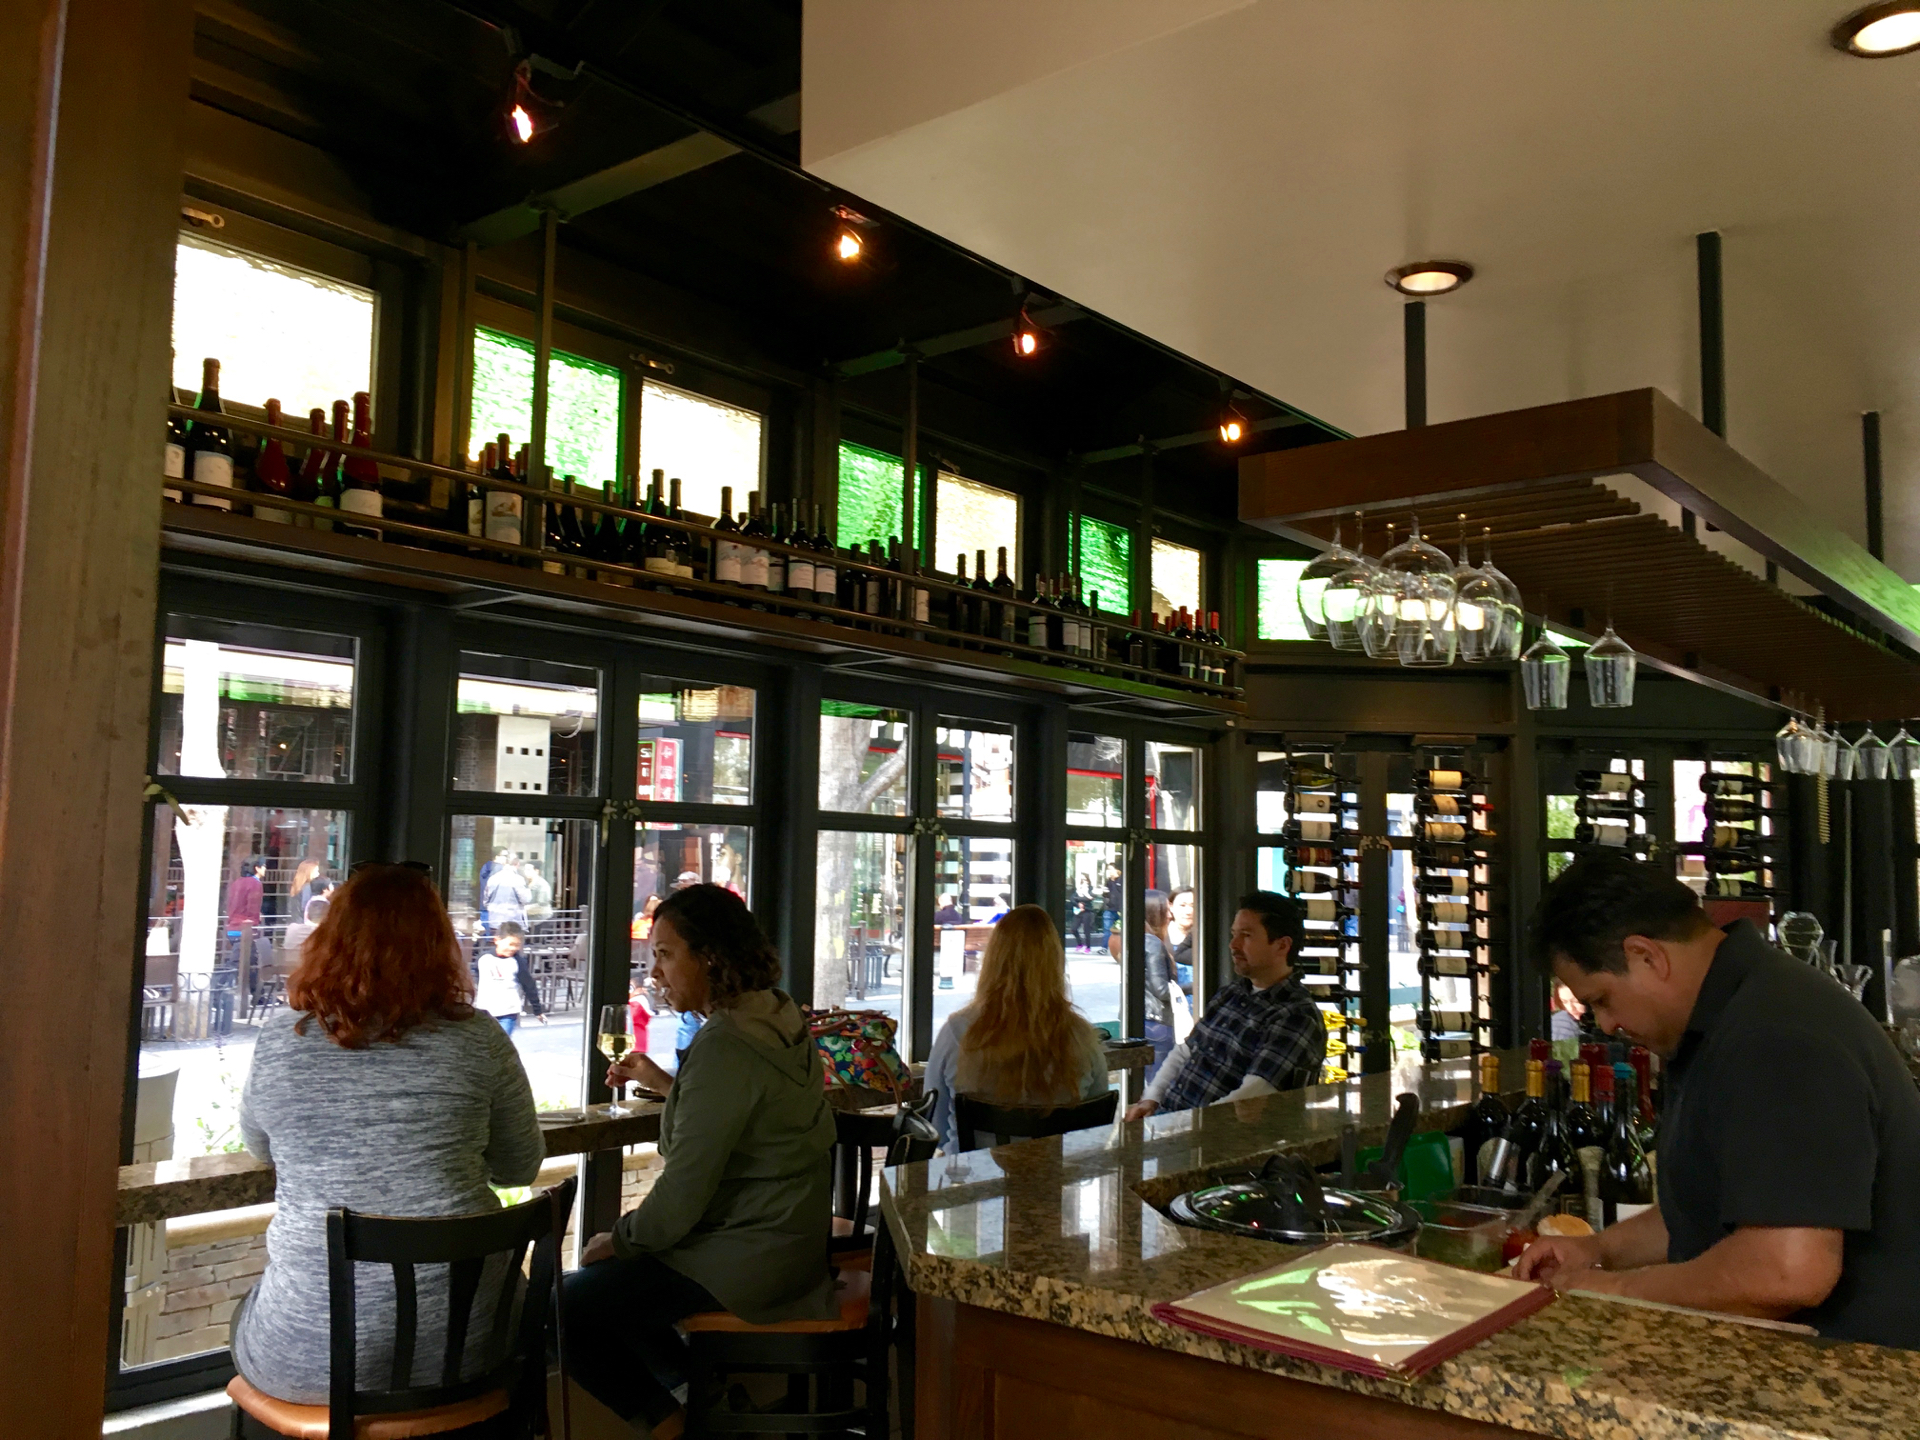 Inside Vintage Wine Bar on Santana Row in San Jose.